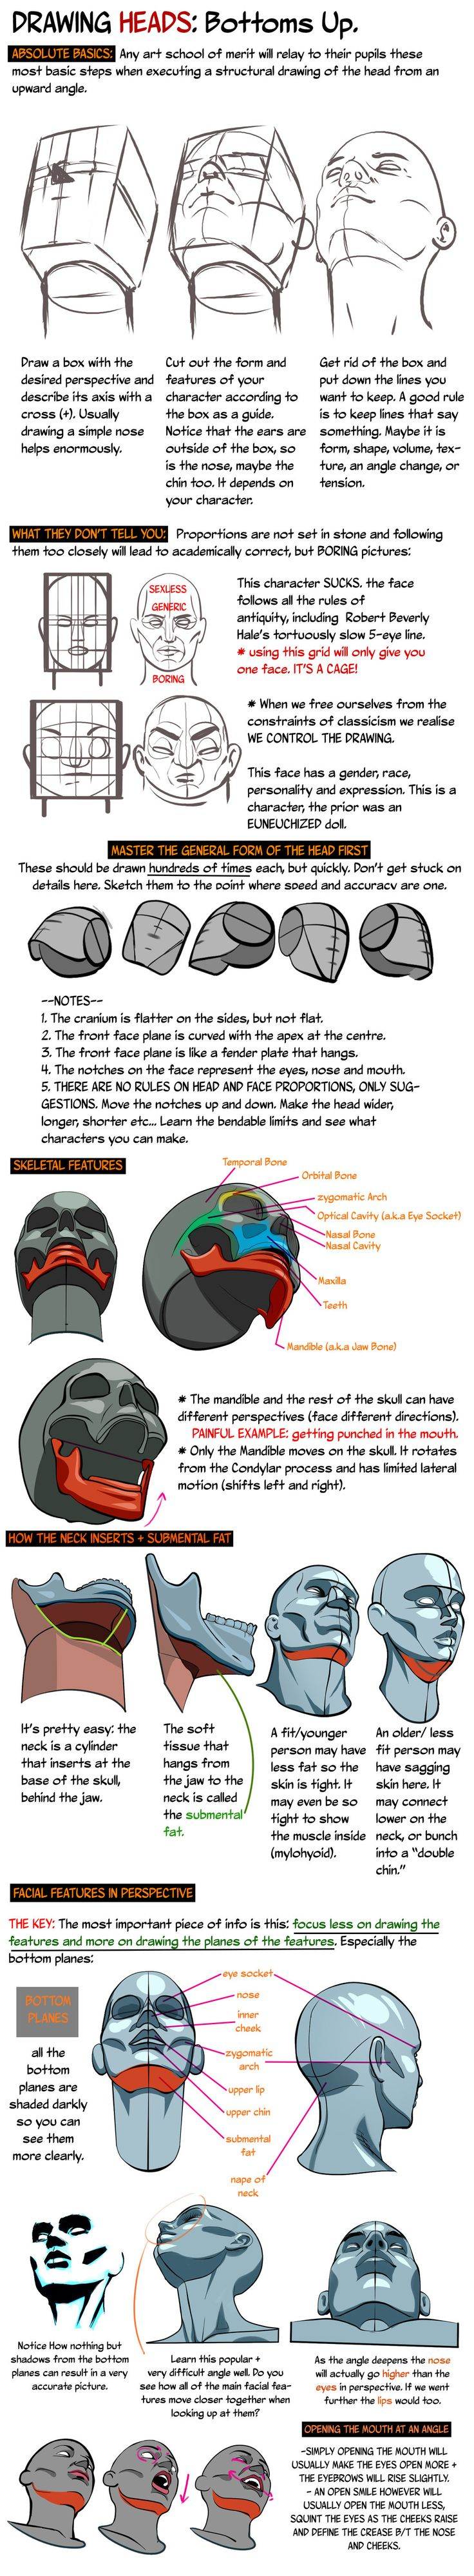 HEADS UP: Drawing the Head from a low angle. by NemoNova.deviantart.com on @DeviantArt